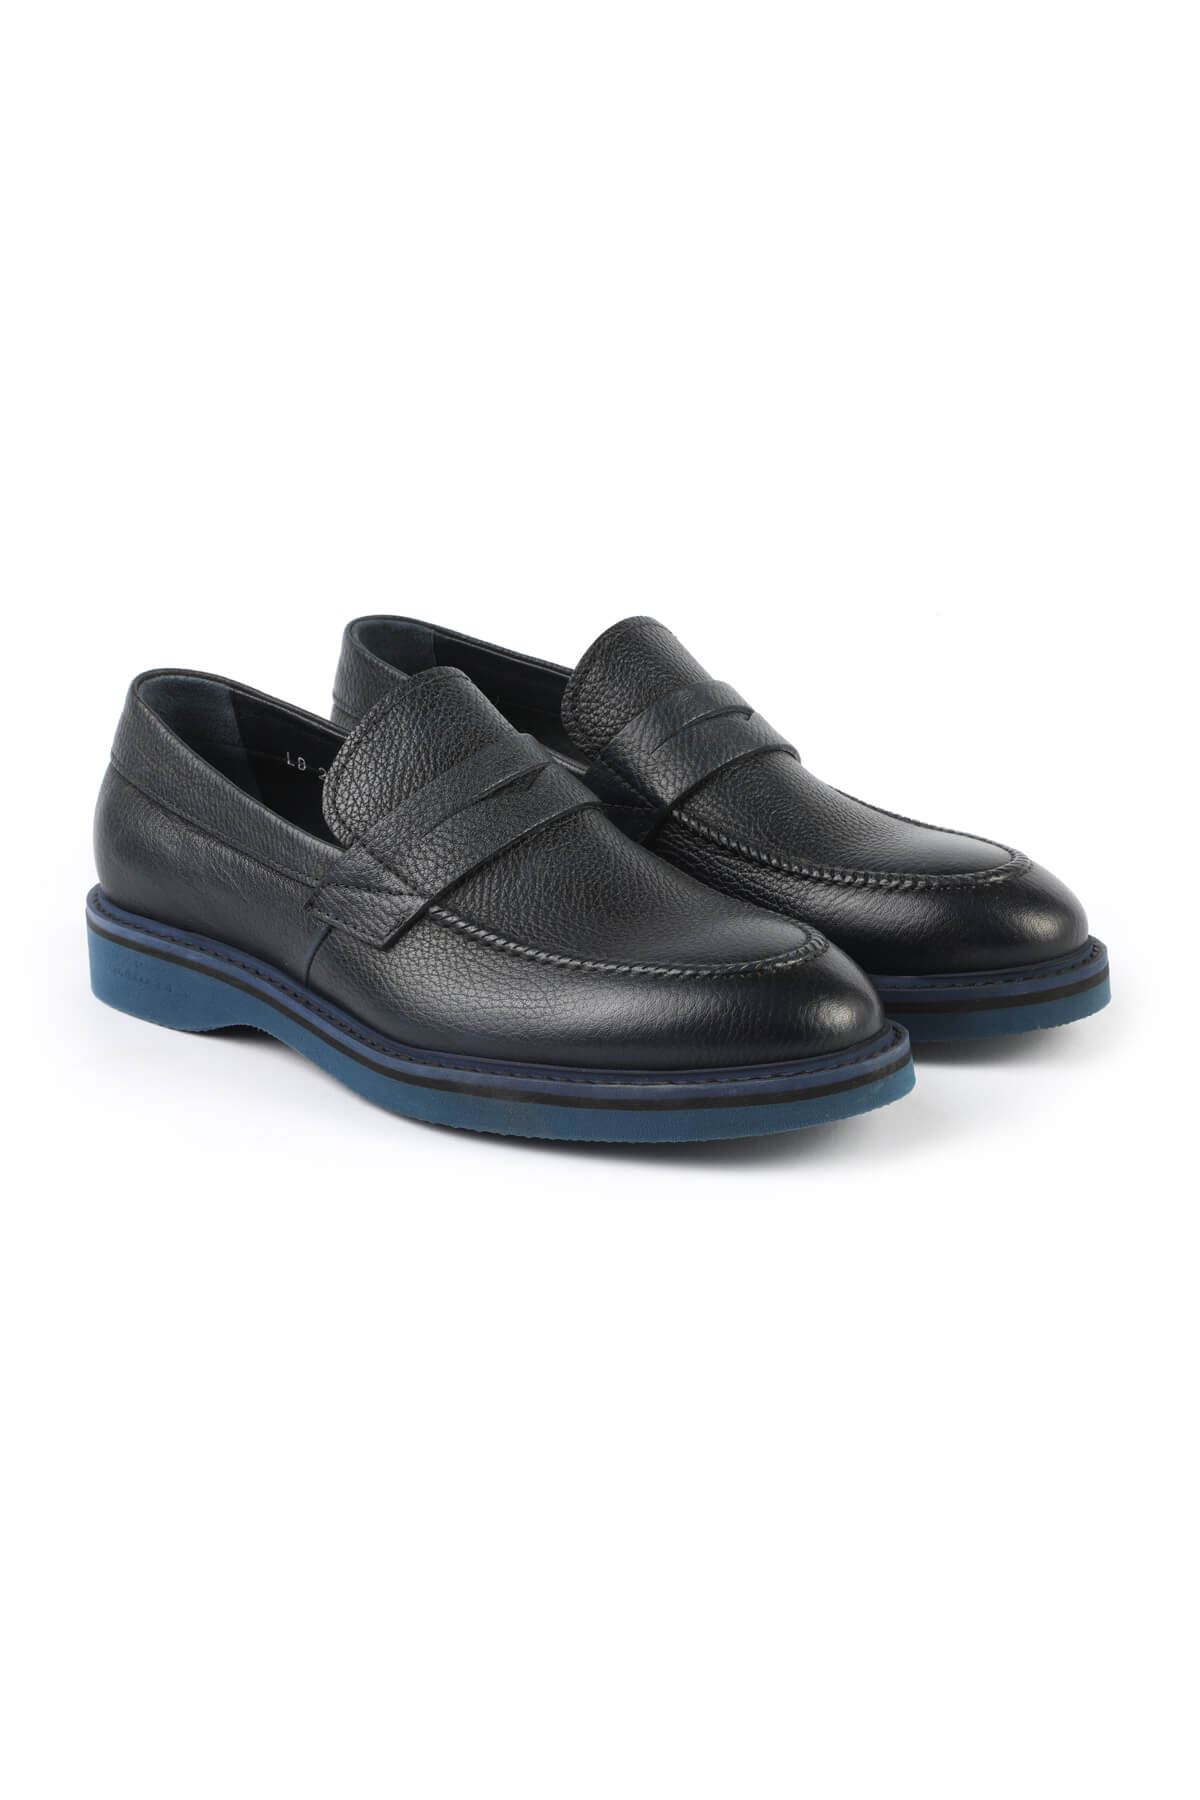 Libero 2695 Navy Blue Loafer Shoes